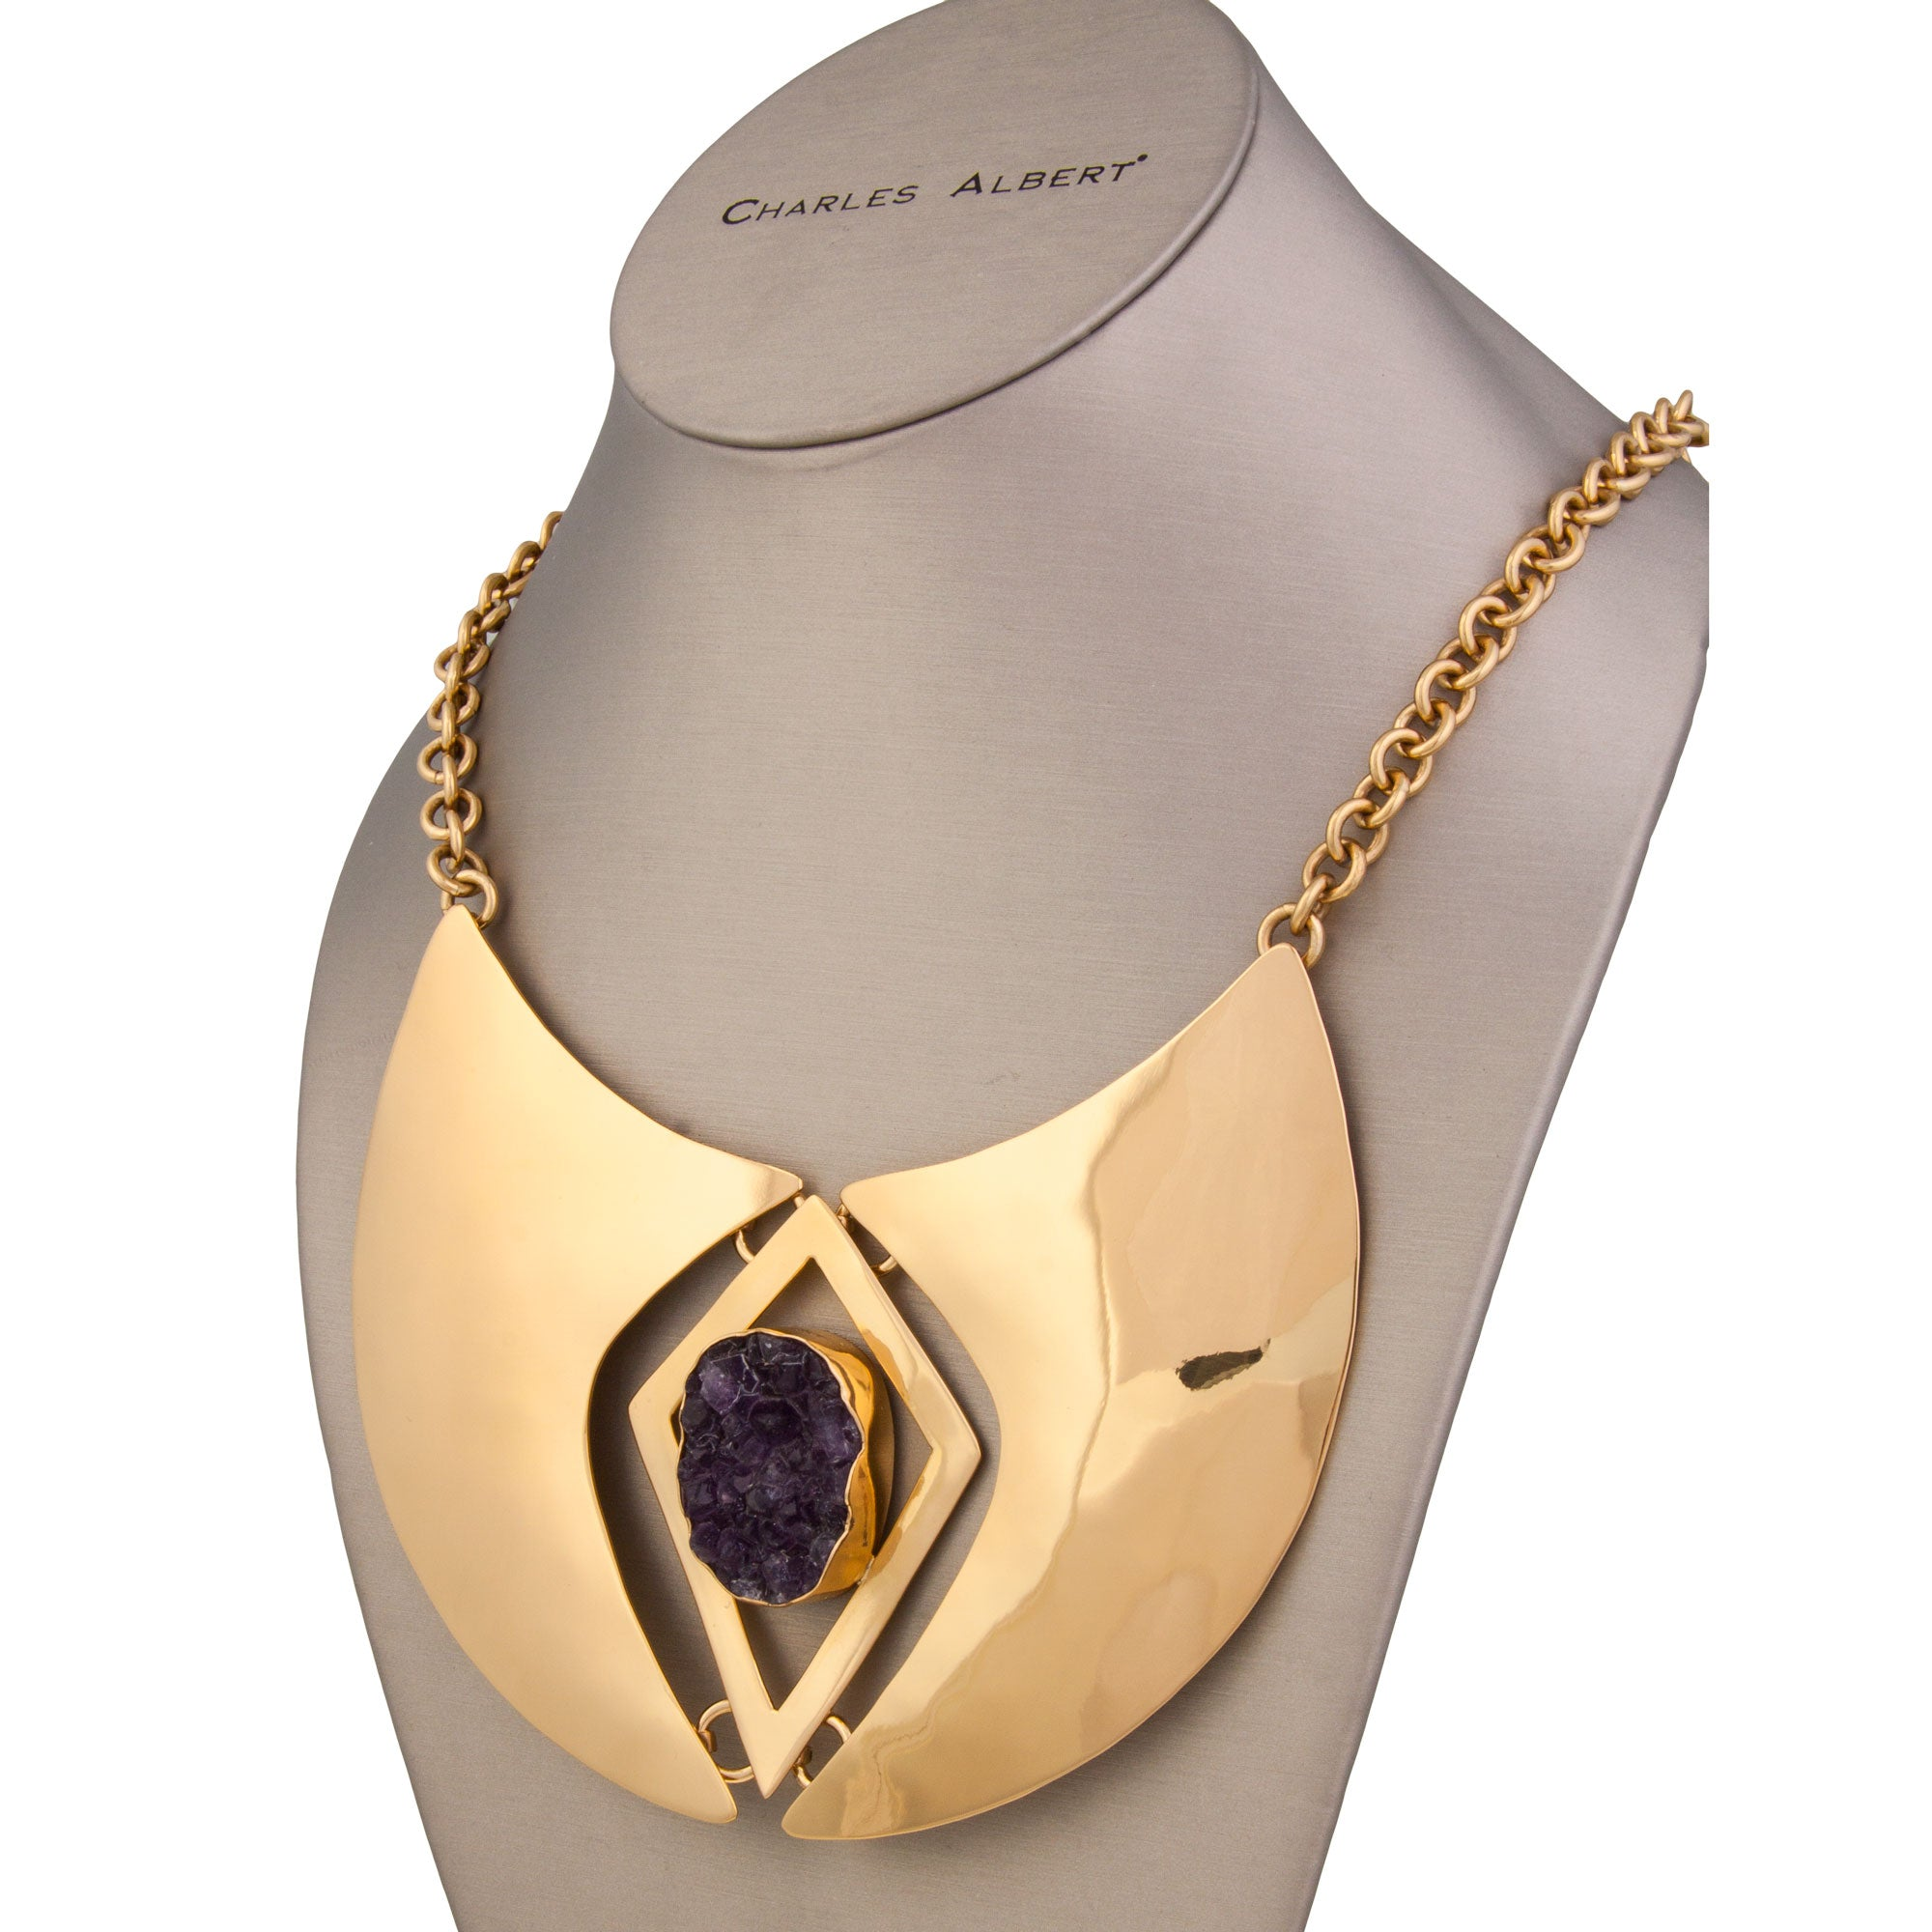 Alchemia Cashmere Amethyst Necklace | Charles Albert Jewelry